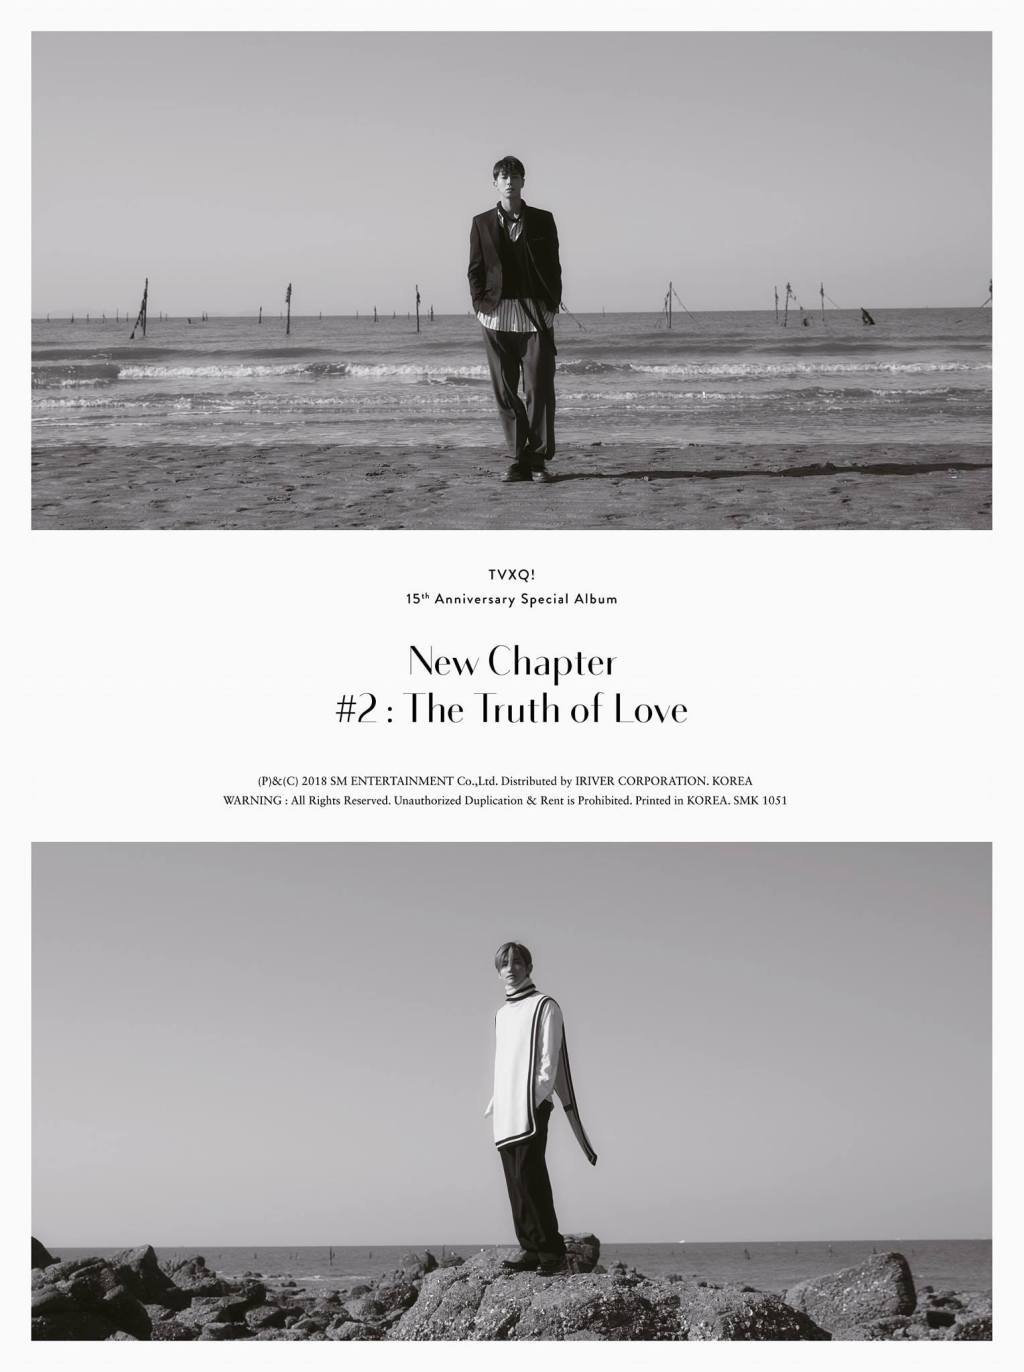 Imagini pentru tvxq new chapter #2 the truth of love